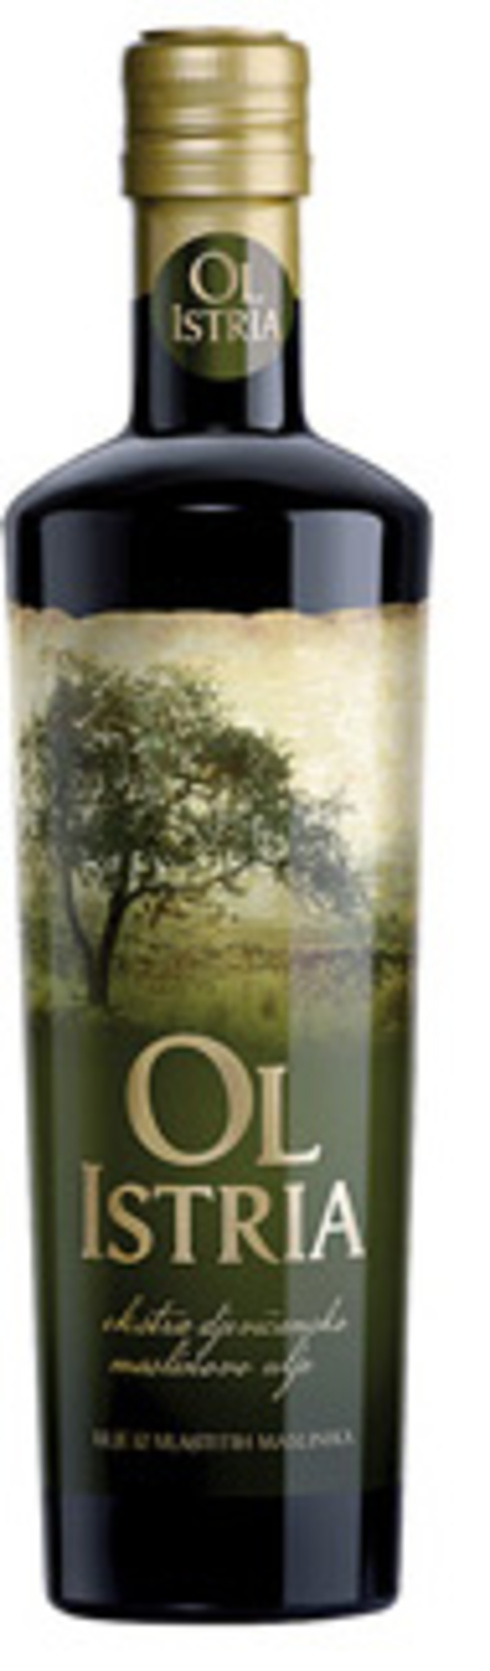 Extra Virgin Olive Oil World Championship, New York - First Place Won by Ol Istria